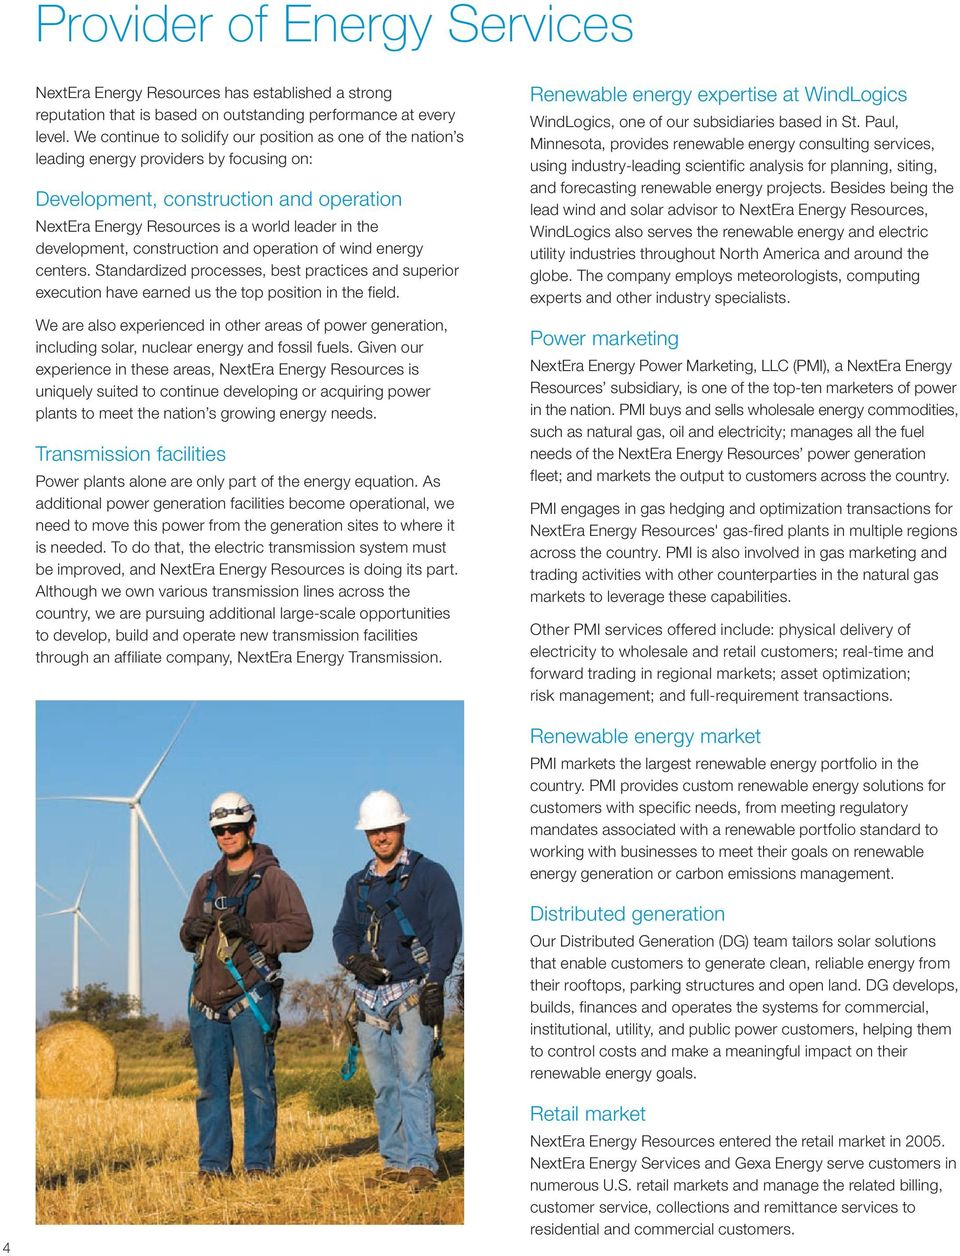 development, construction and operation of wind energy centers. Standardized processes, best practices and superior execution have earned us the top position in the field.